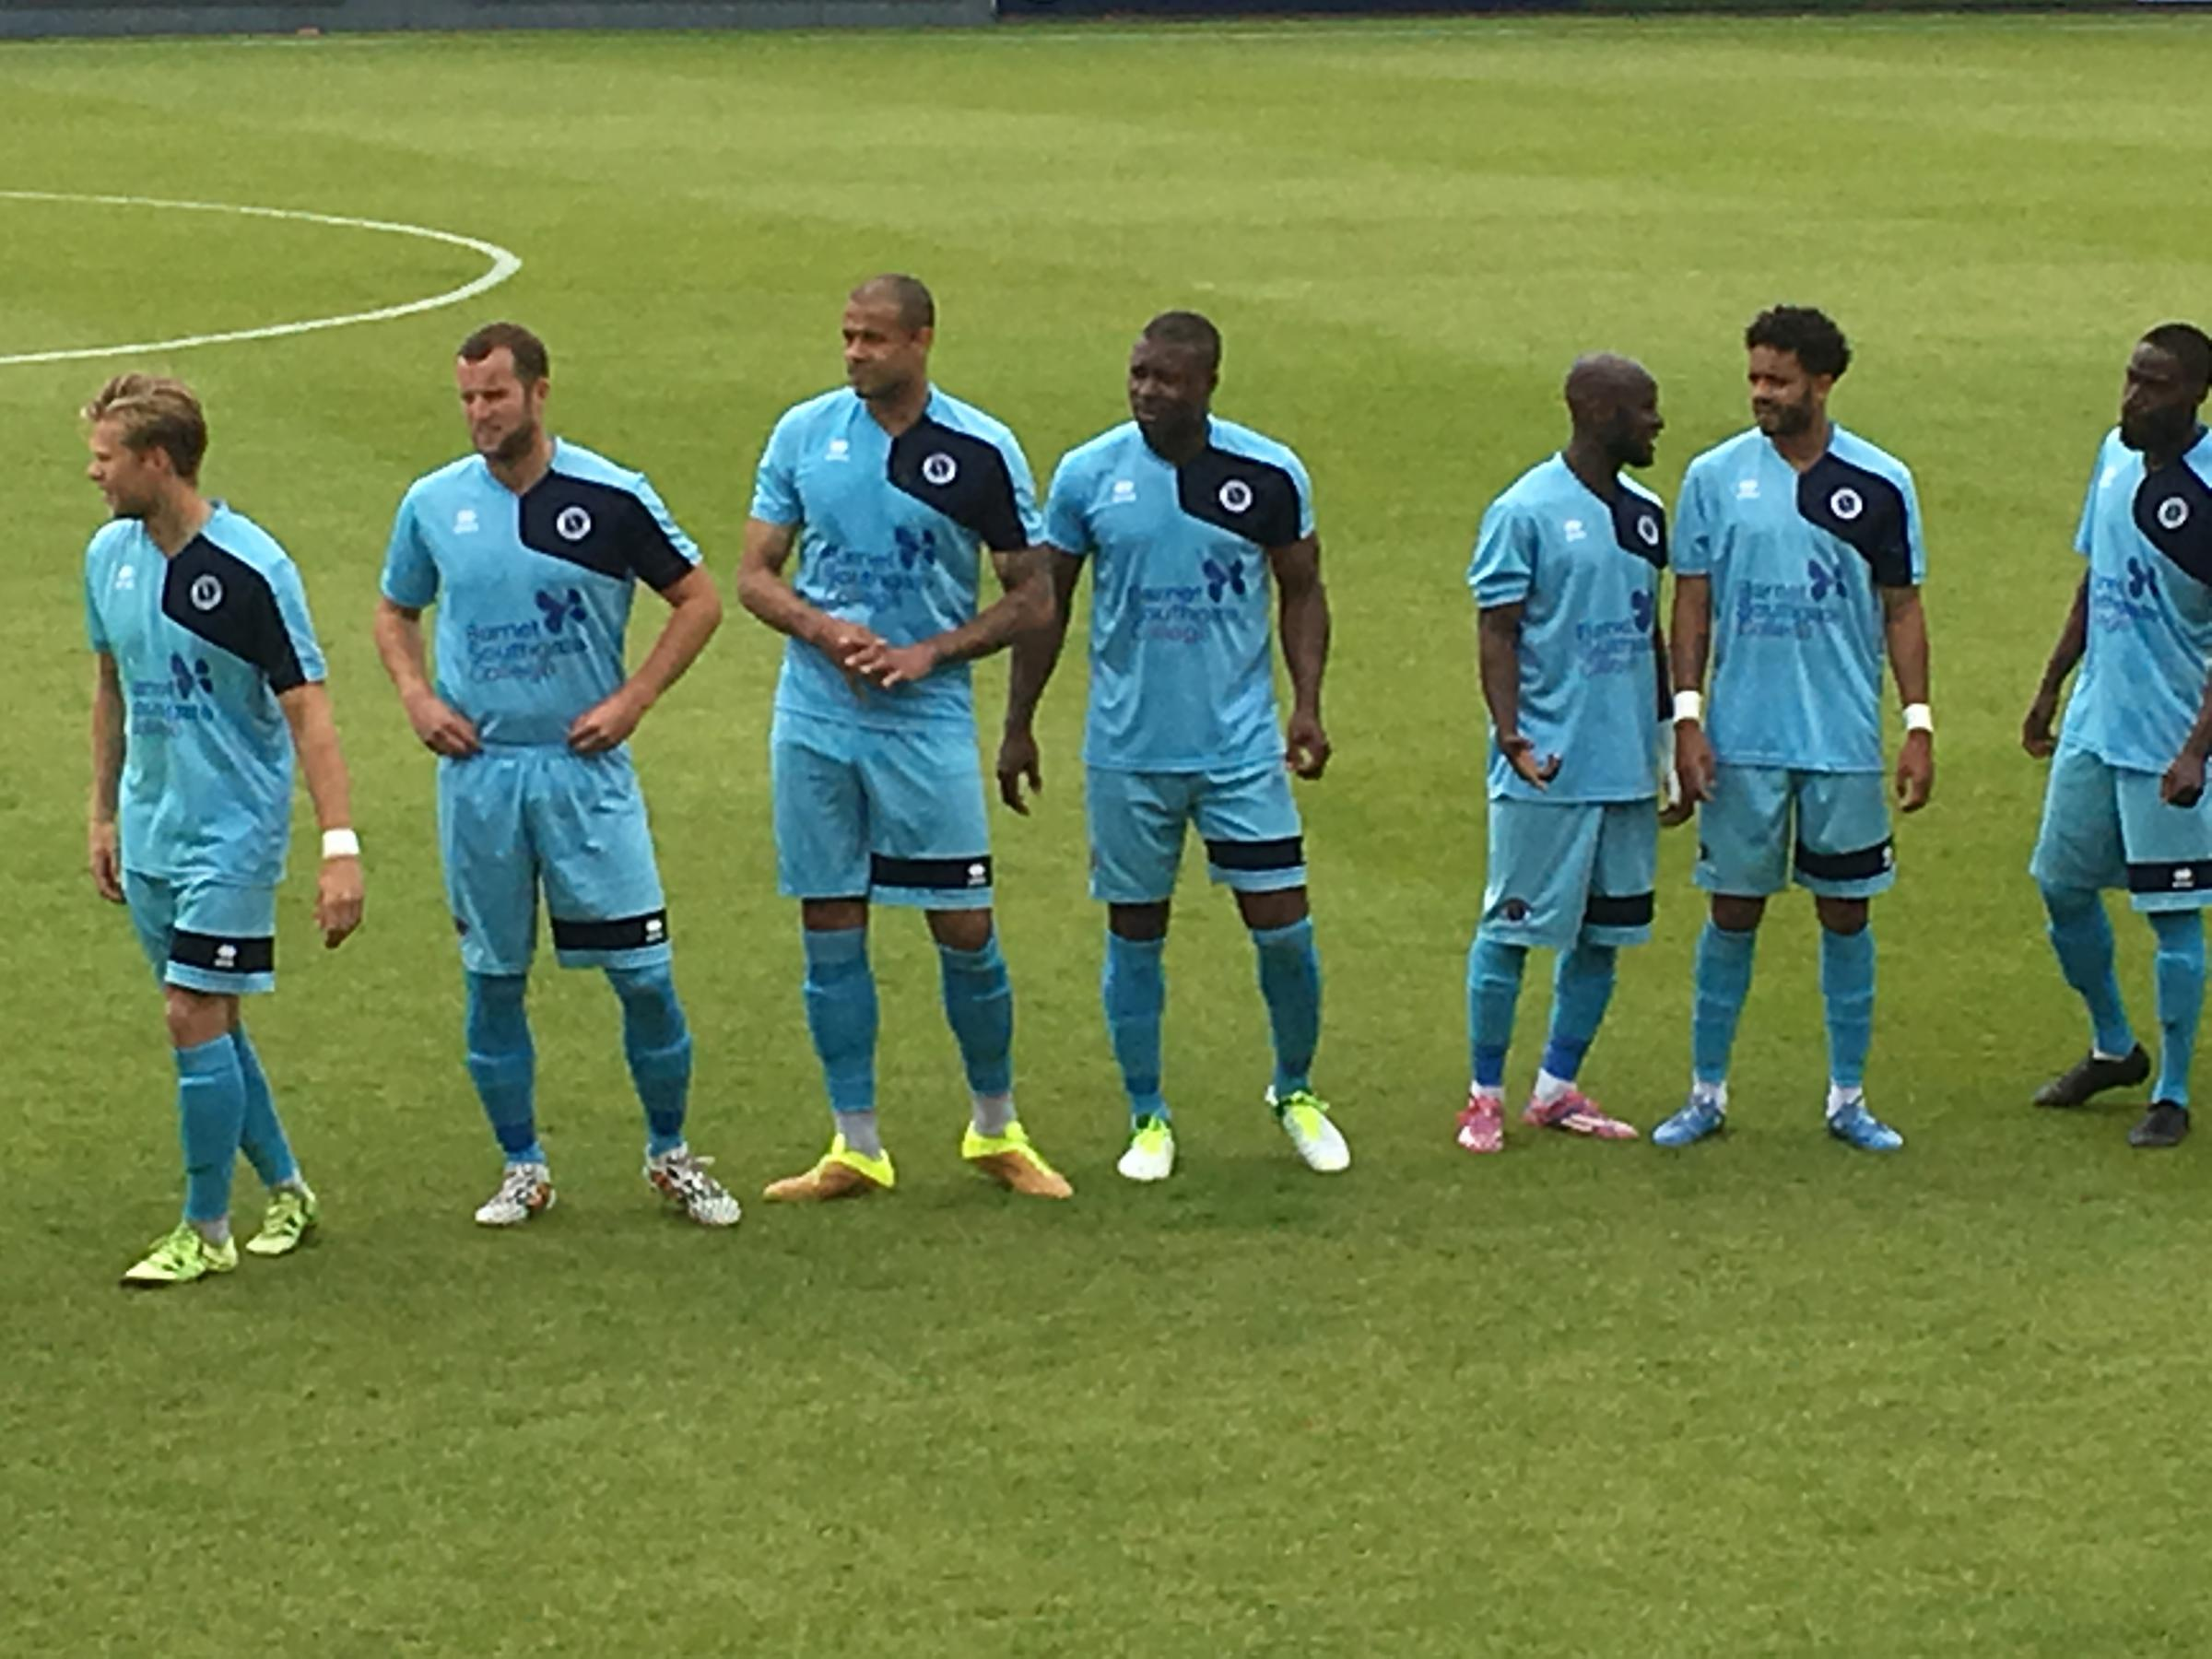 Yakubu, third from the right, lines up for Boreham Wood this afternoon. Picture: Tom Bodell